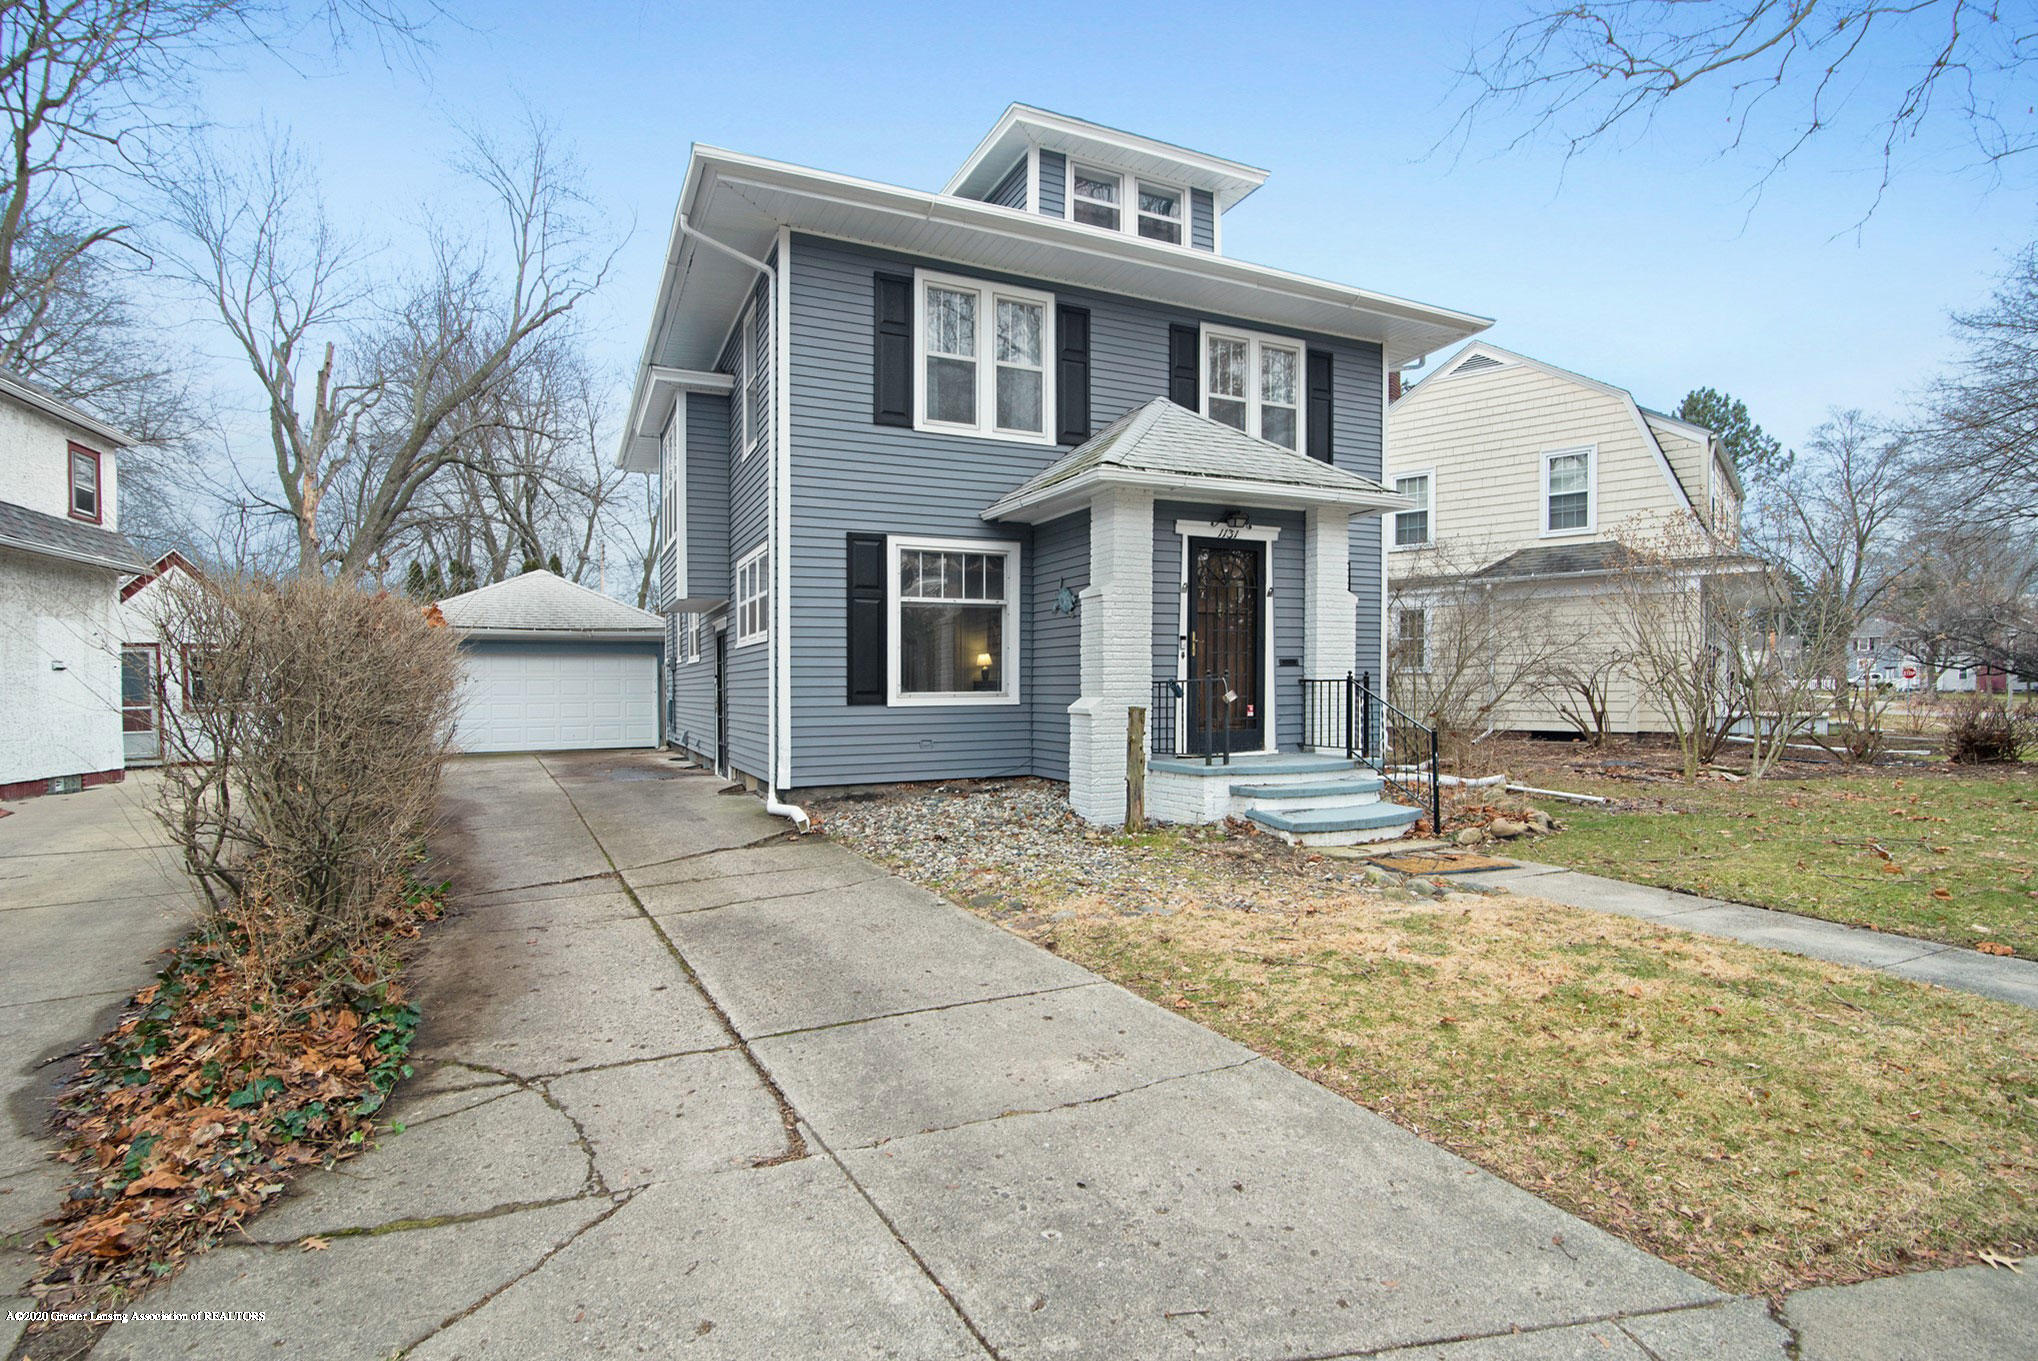 1131 S Genesee Dr - 33 - 32